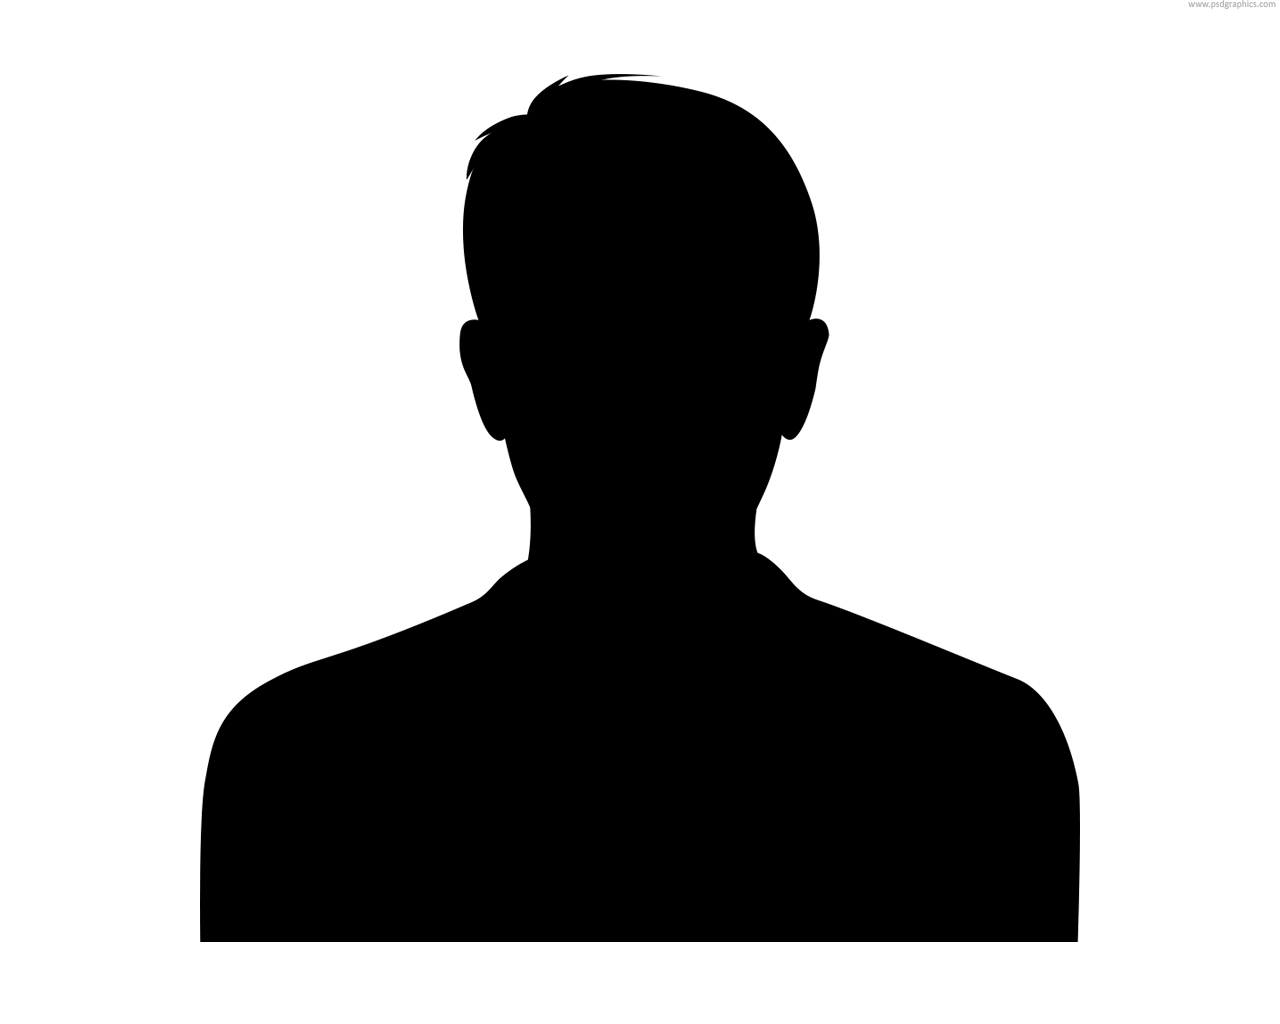 Head Silhouette Png - Free Silhouette Man Head, Download Free Clip Art, Free Clip Art on ...